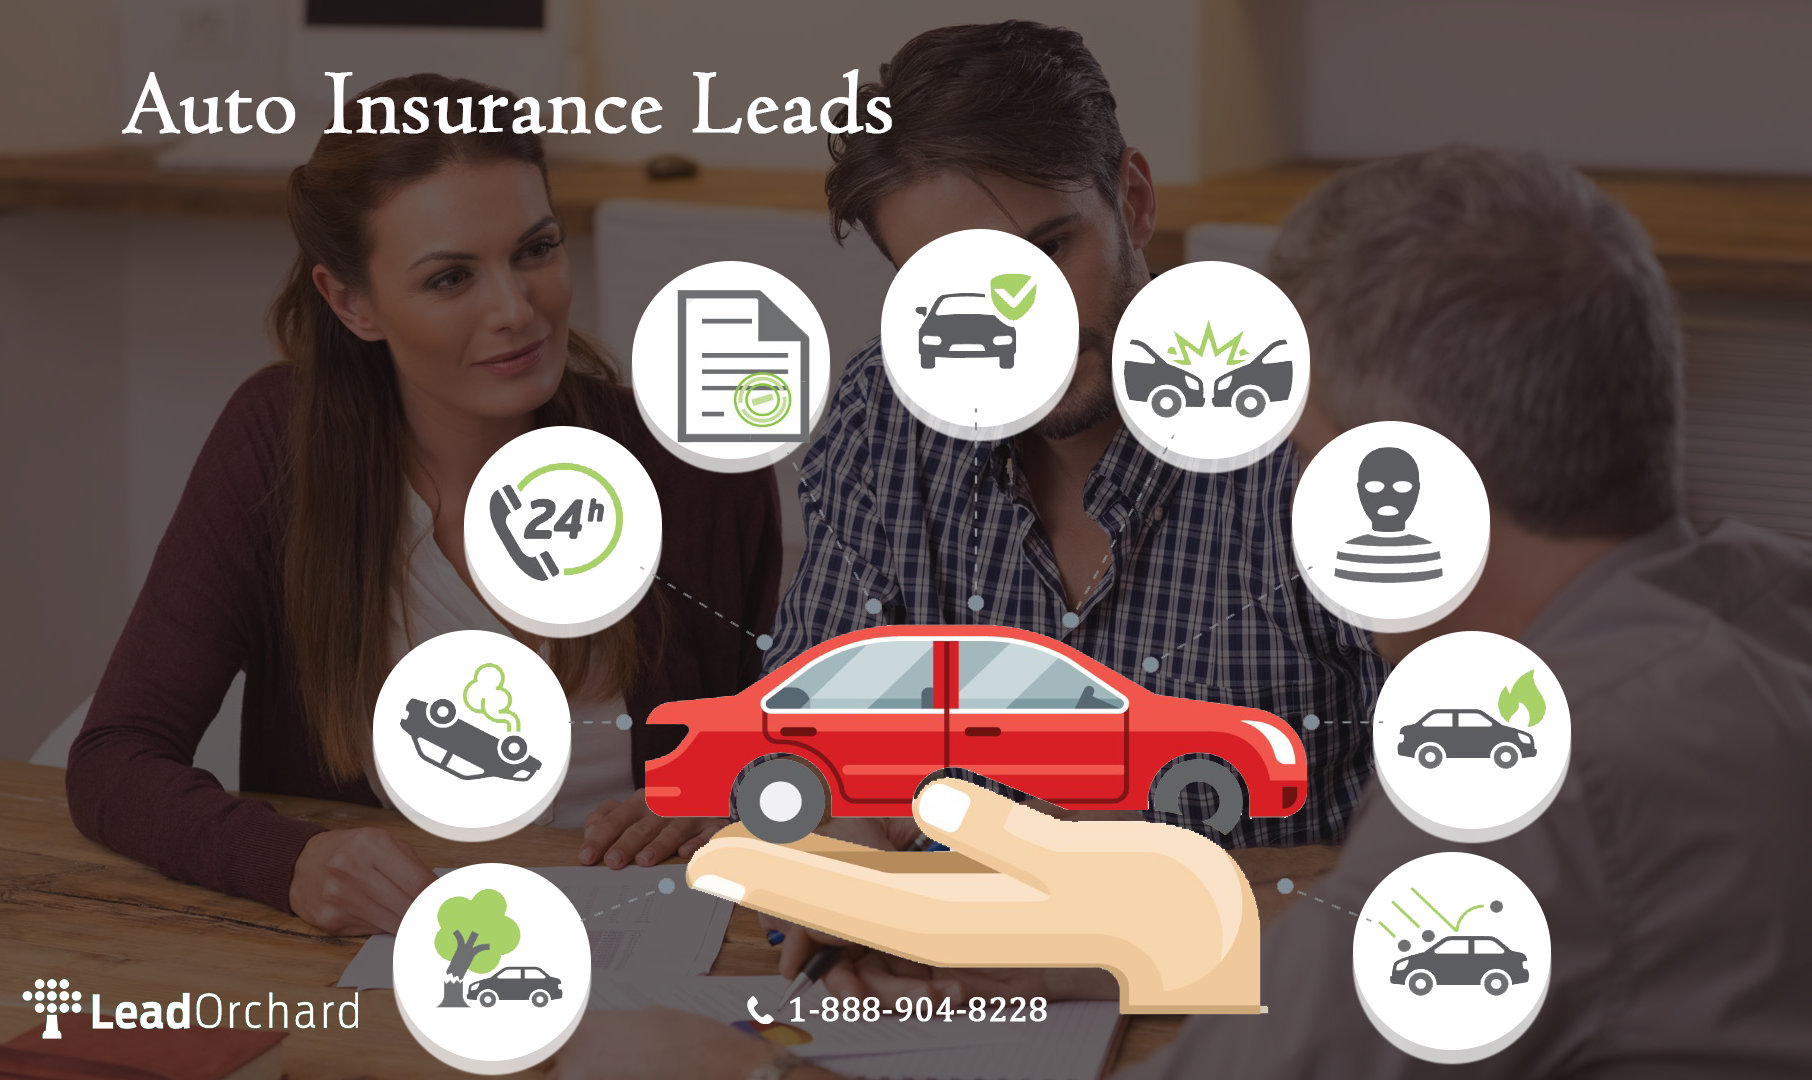 Auto Insurance Leads Home and auto insurance, Car